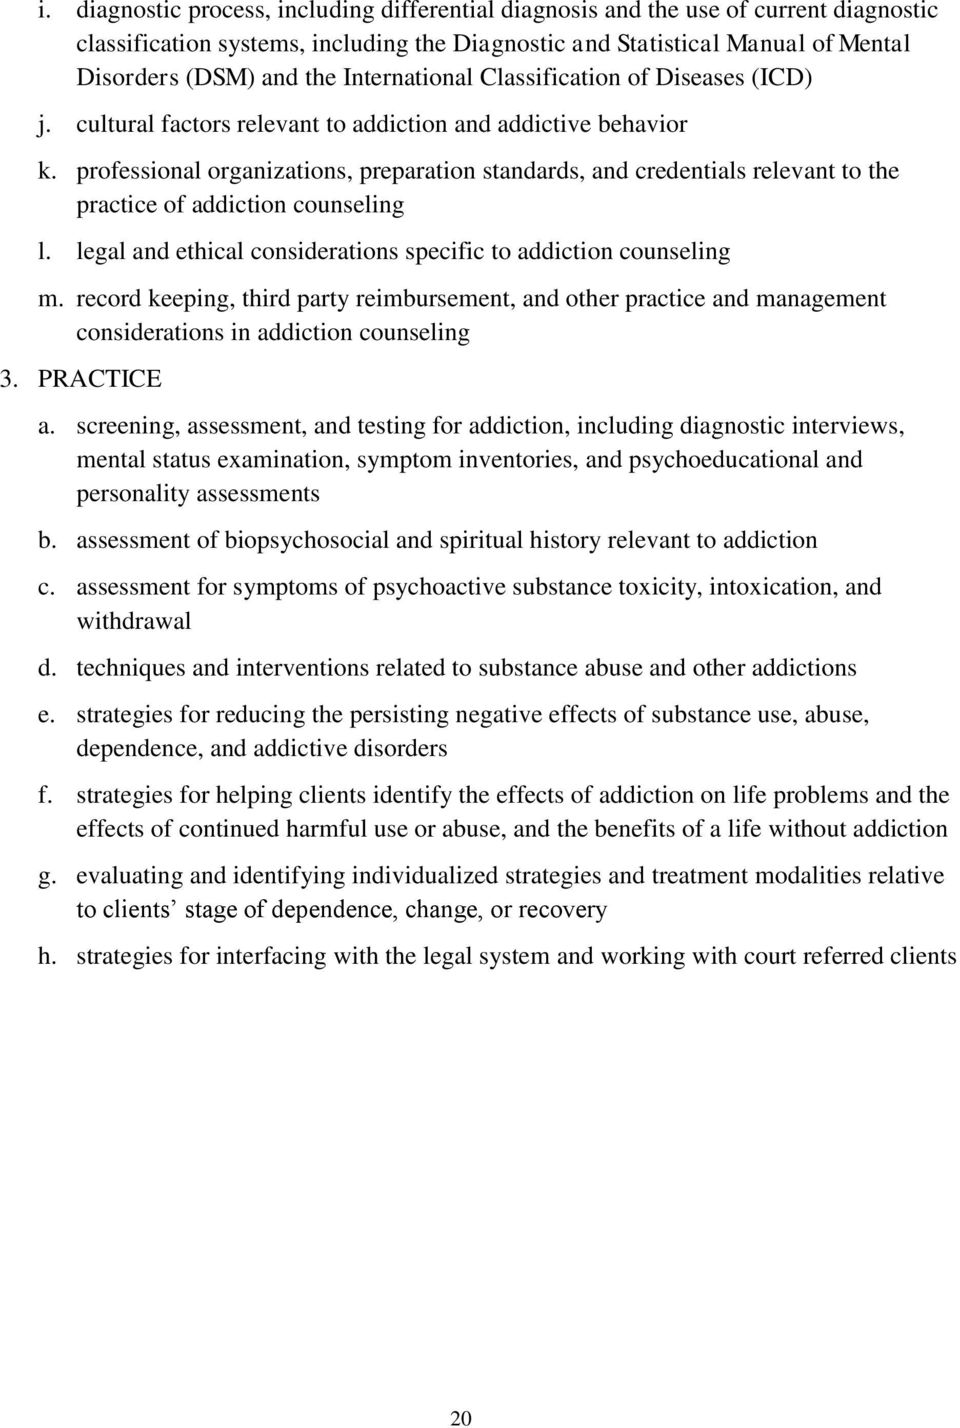 professional organizations, preparation standards, and credentials relevant to the practice of addiction counseling l. legal and ethical considerations specific to addiction counseling m.